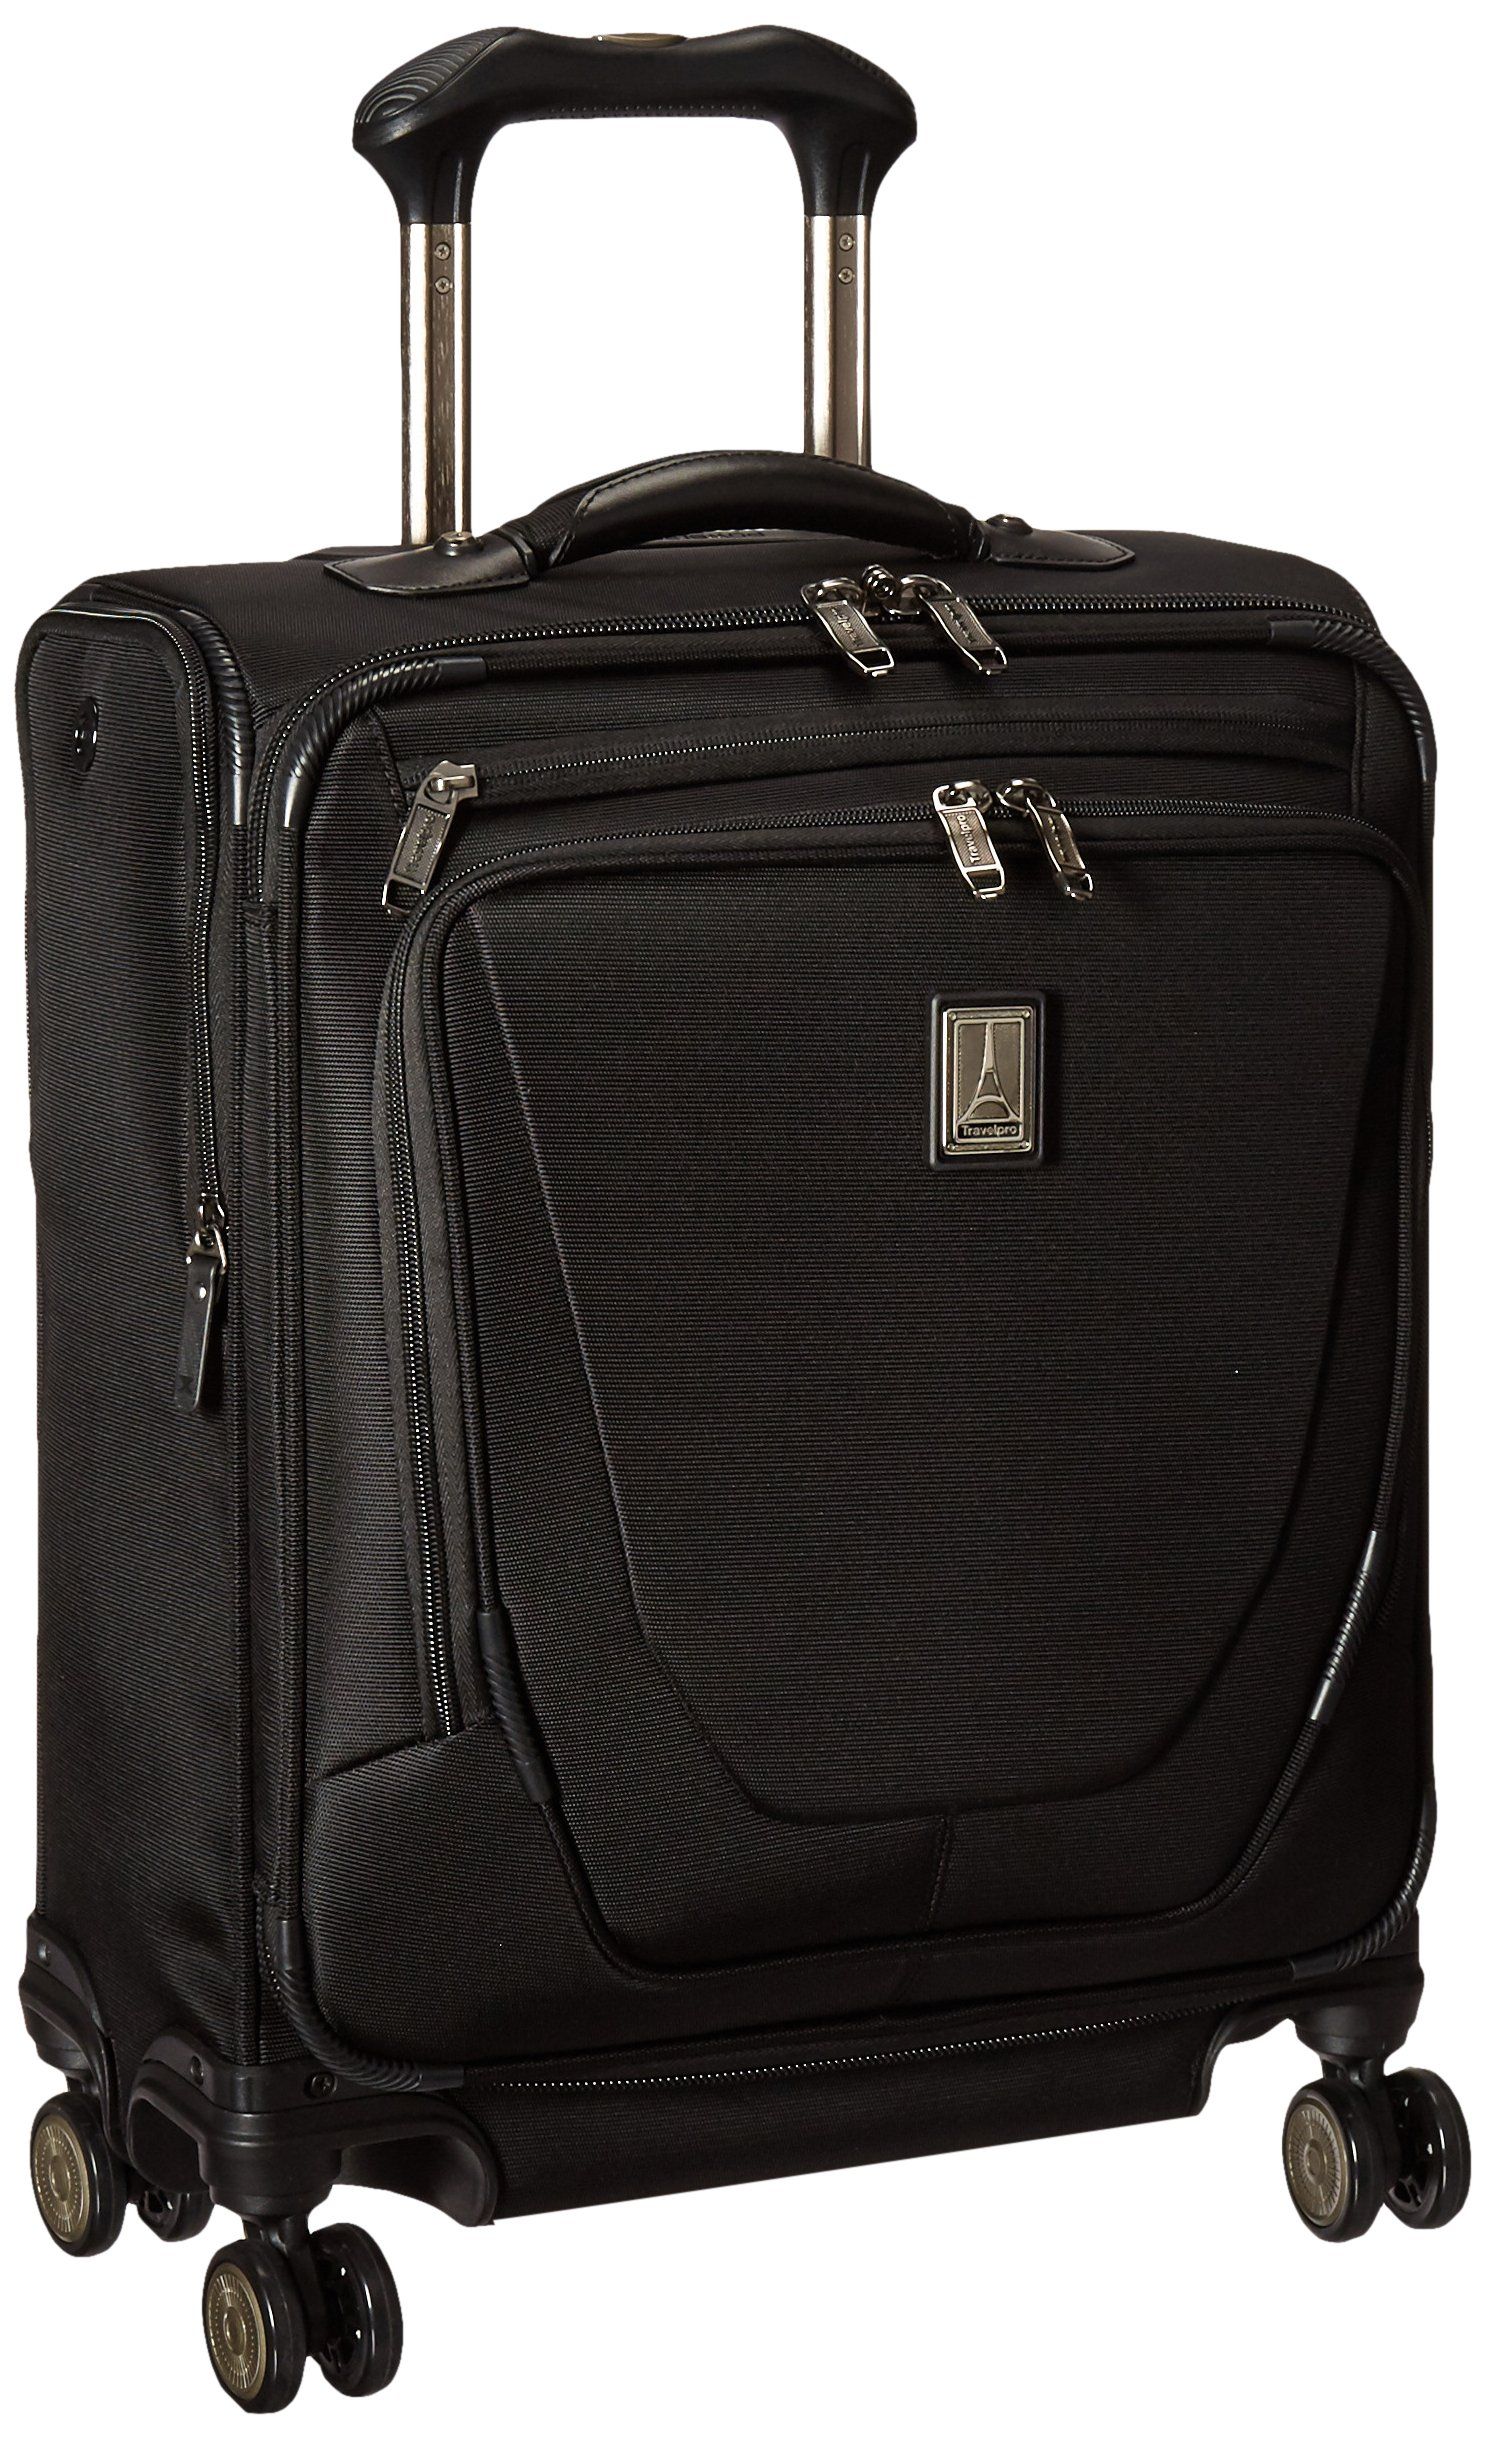 Travelpro Crew 11 20'' International Spinner Carry-on Suitcase, Black